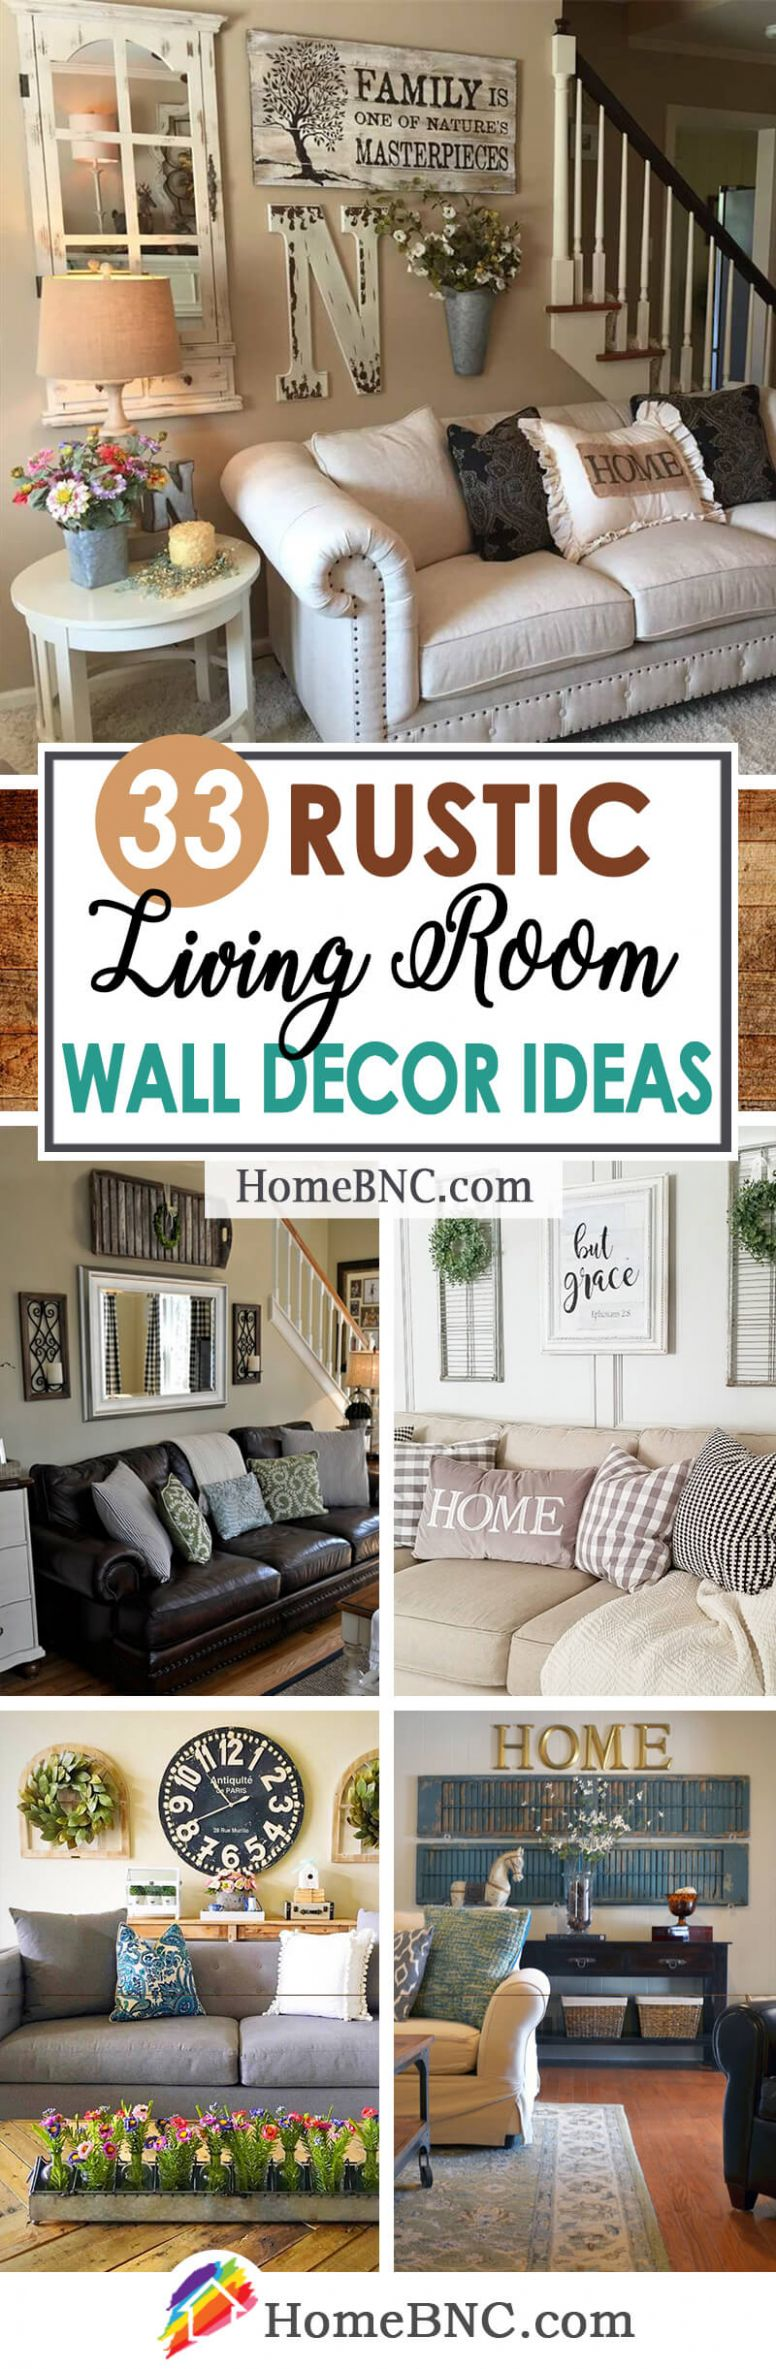 11 Best Rustic Living Room Wall Decor Ideas and Designs for 11 - wall decor ideas for family room